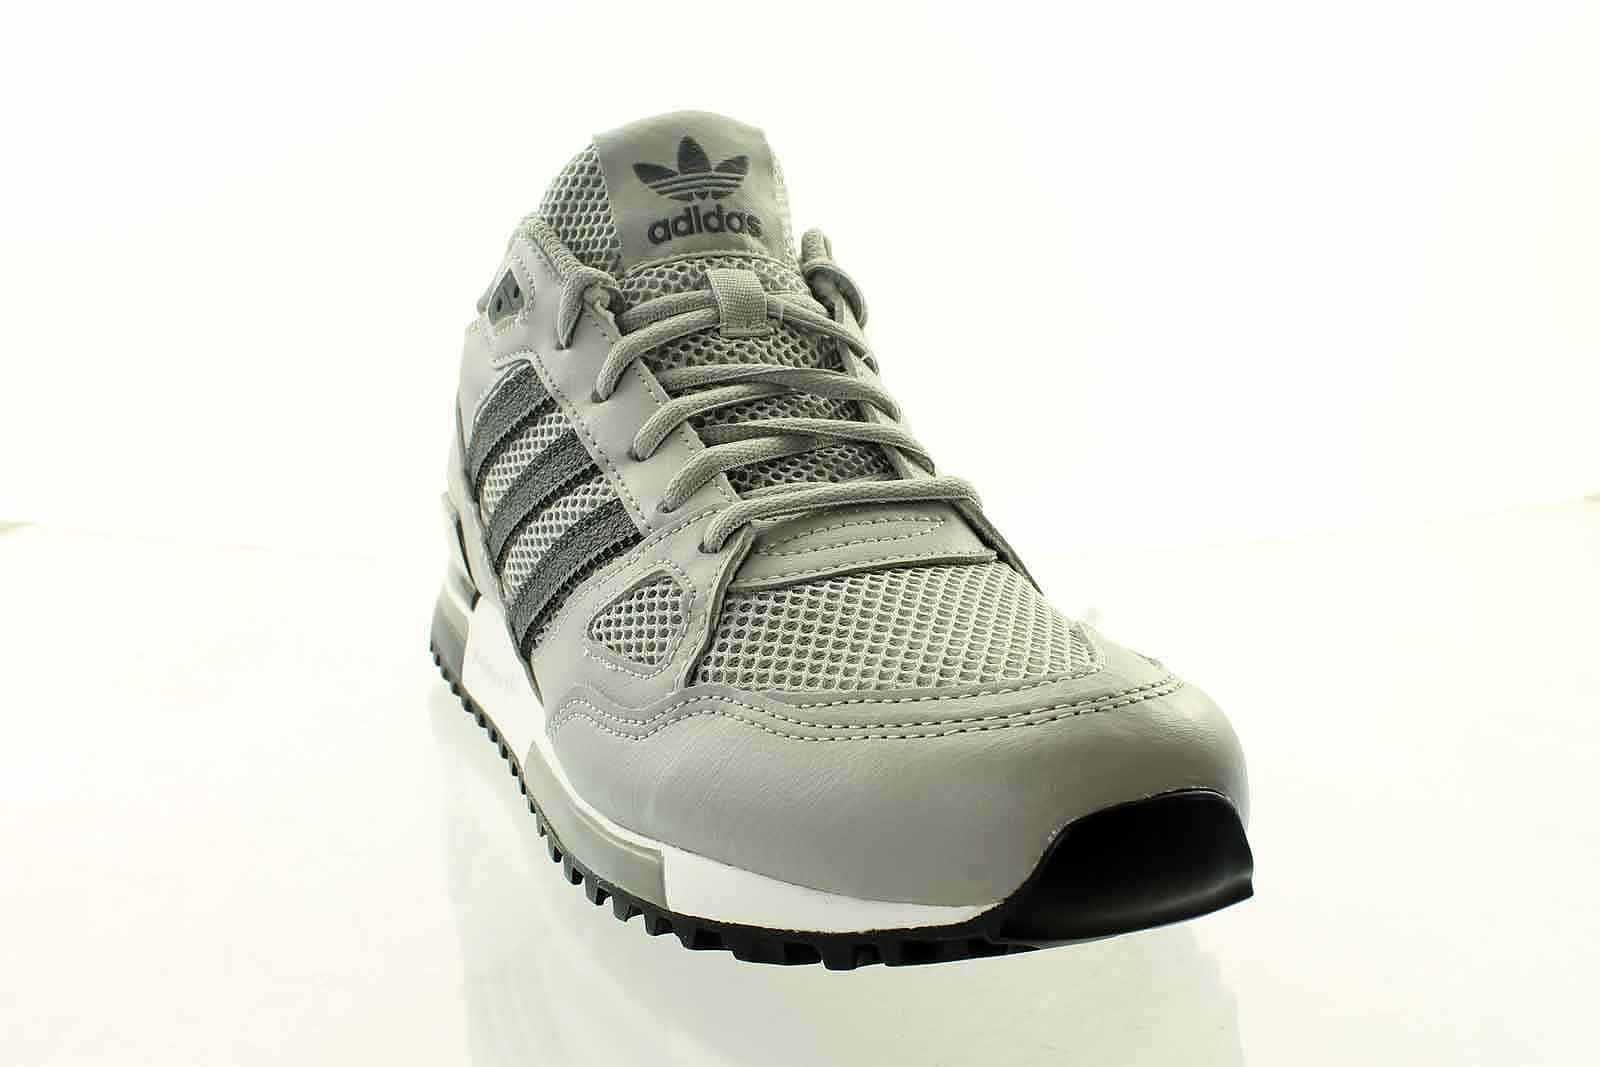 premium selection f71bf 40841 low price adidas zx750 unisex grey white green adidas zx 750 grey d7ce8  d2381  coupon for adidas zx 750 mens trainers originals uk 3 c98d3 b5b7e